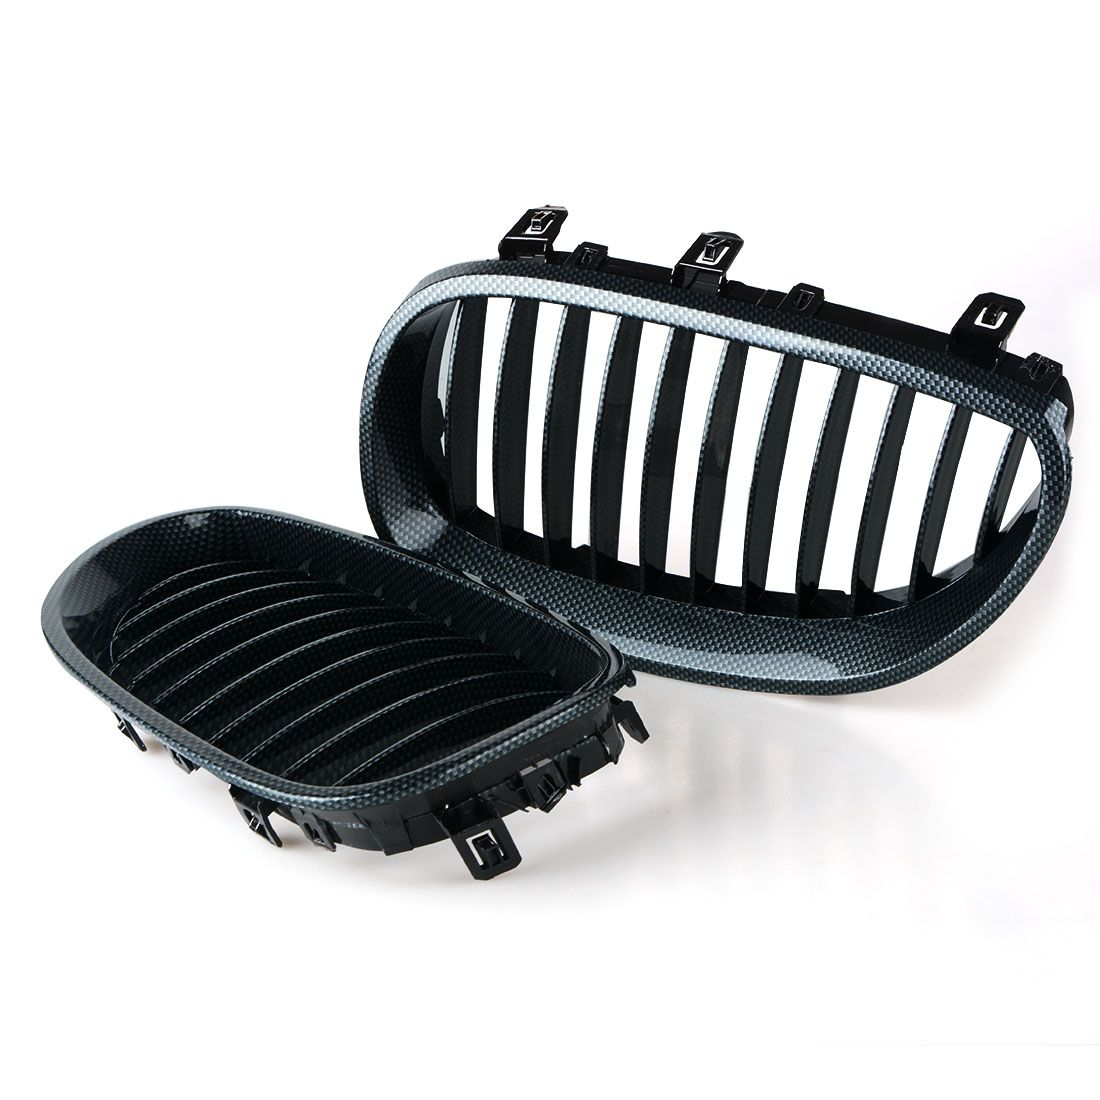 Auto Replacement Parts Racing Grills Car Front Kidney Grille Carbon Fiber Grilles For BMW 5 Series E60 2003-2009